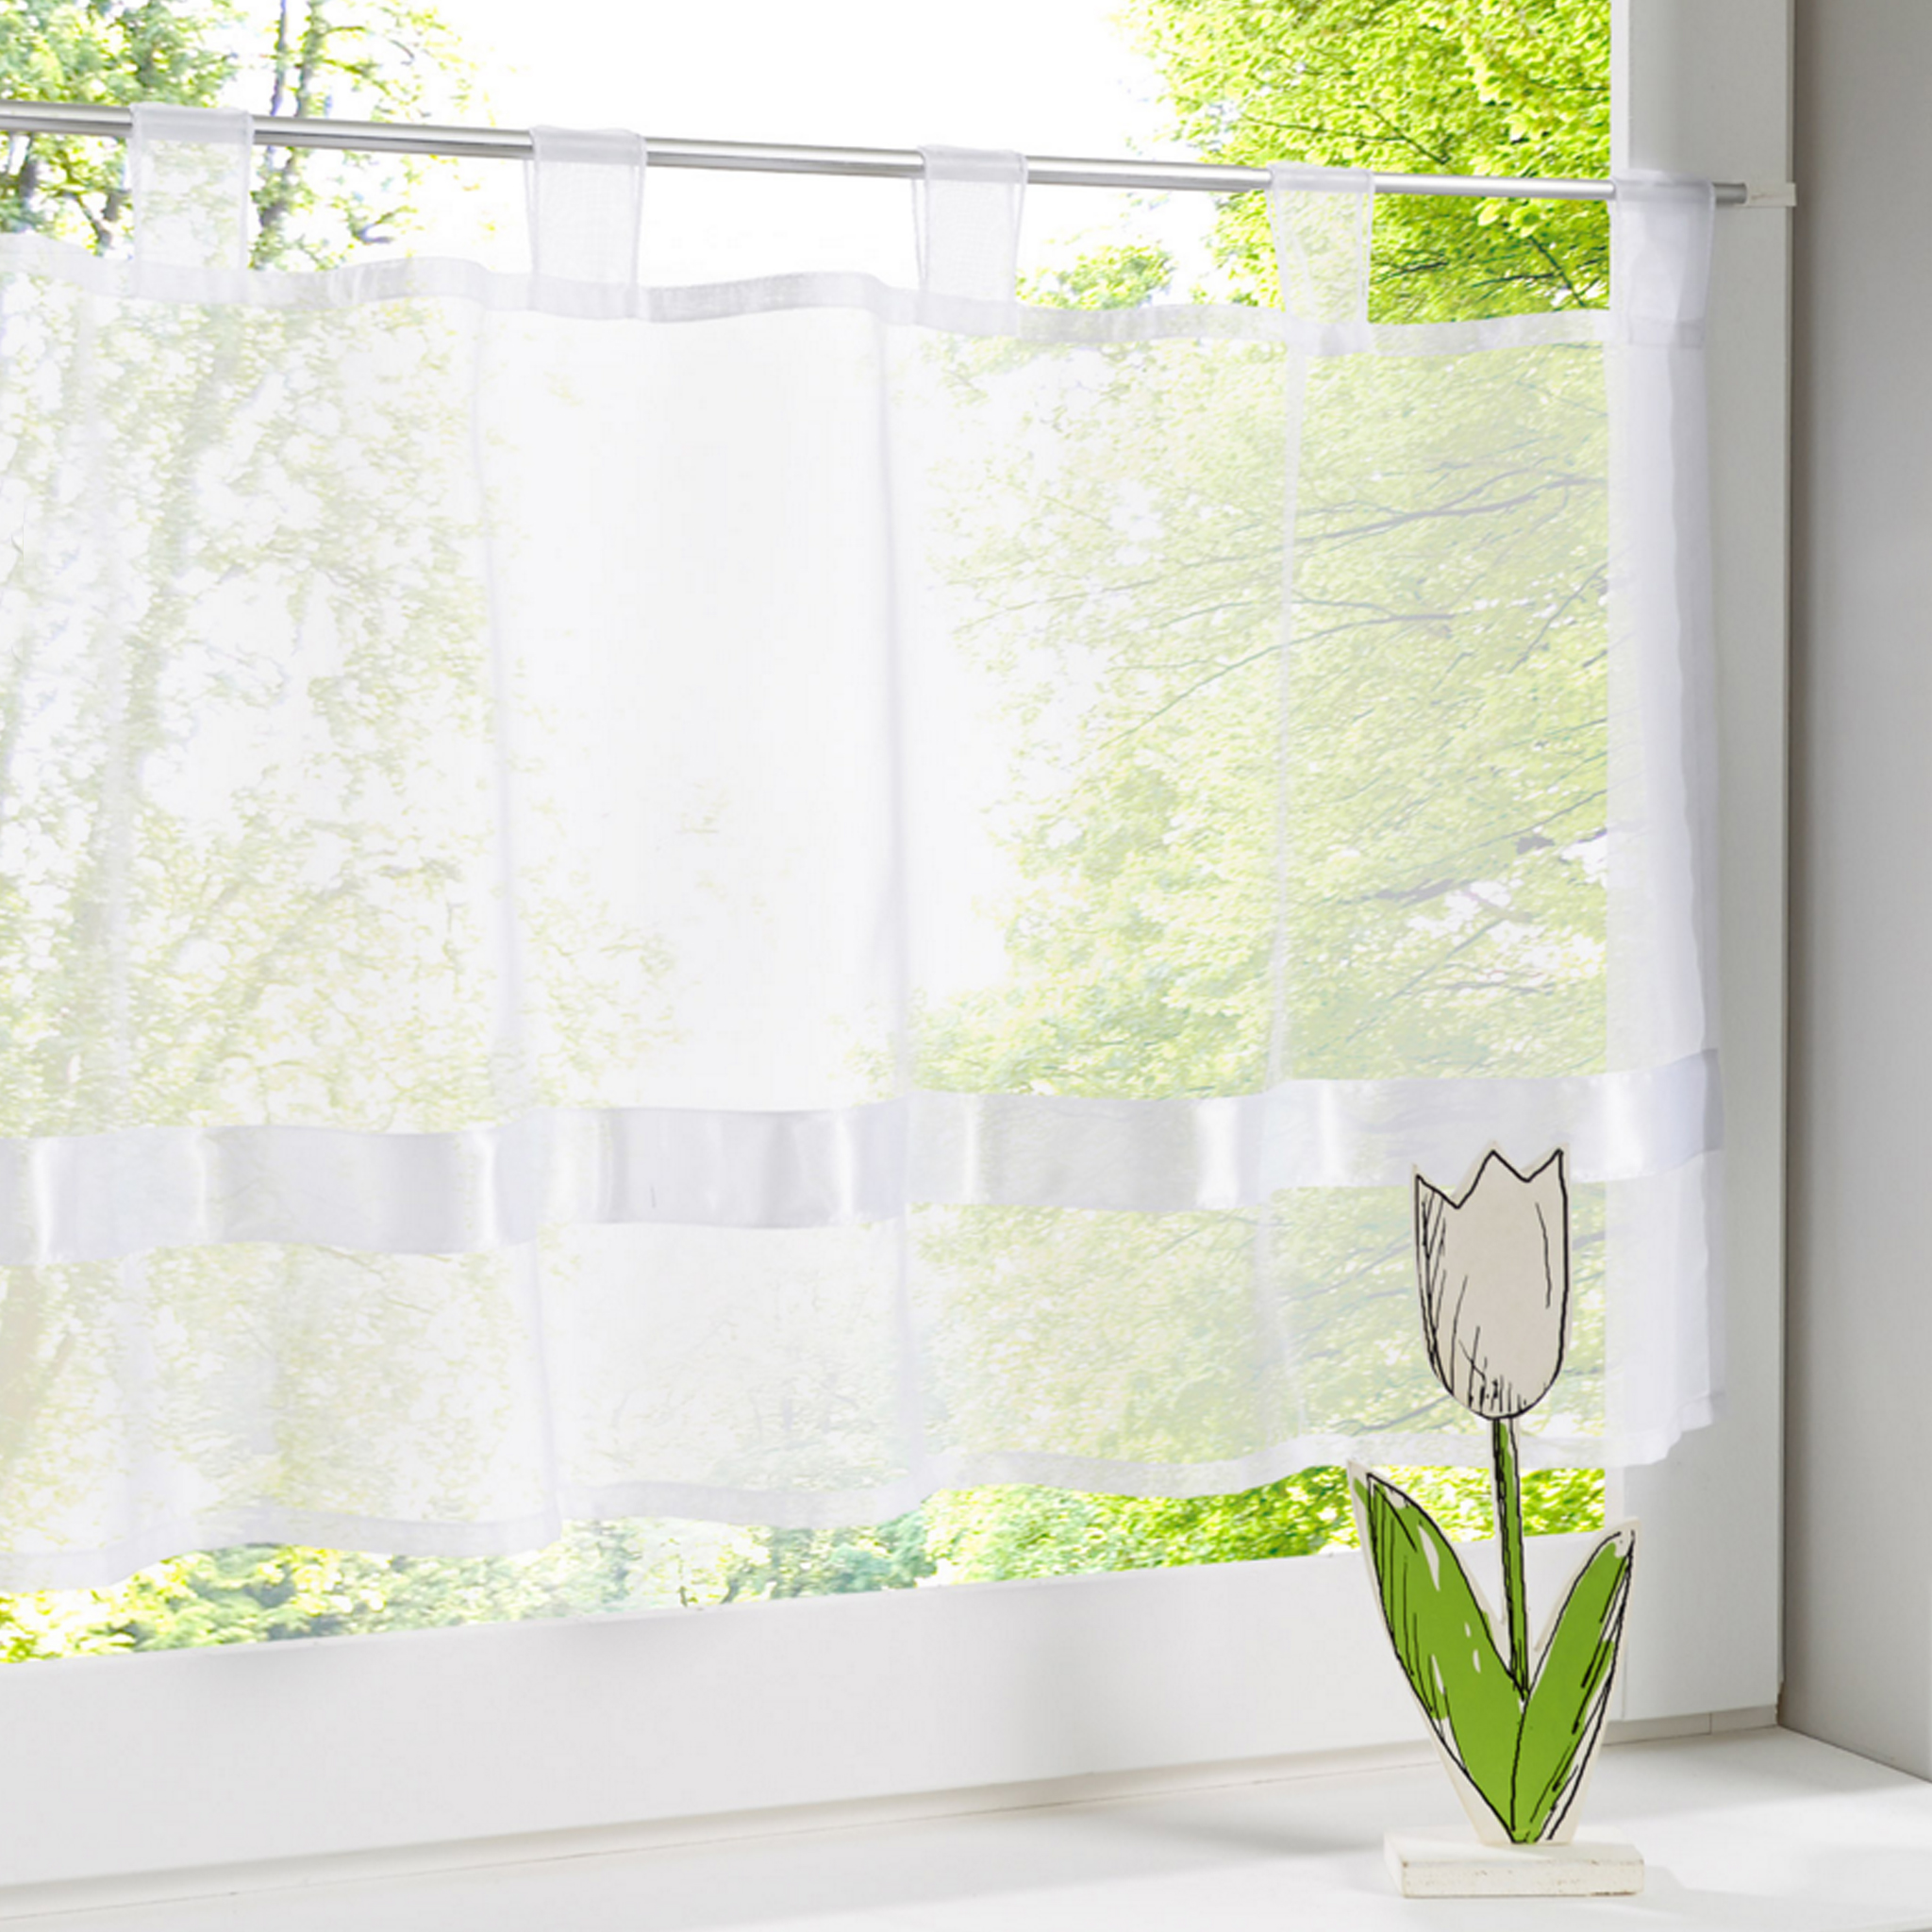 curtain by studio floral top beatrice and design pencil lined made furnishings product in tape cream ready pleat belfield silver curtains